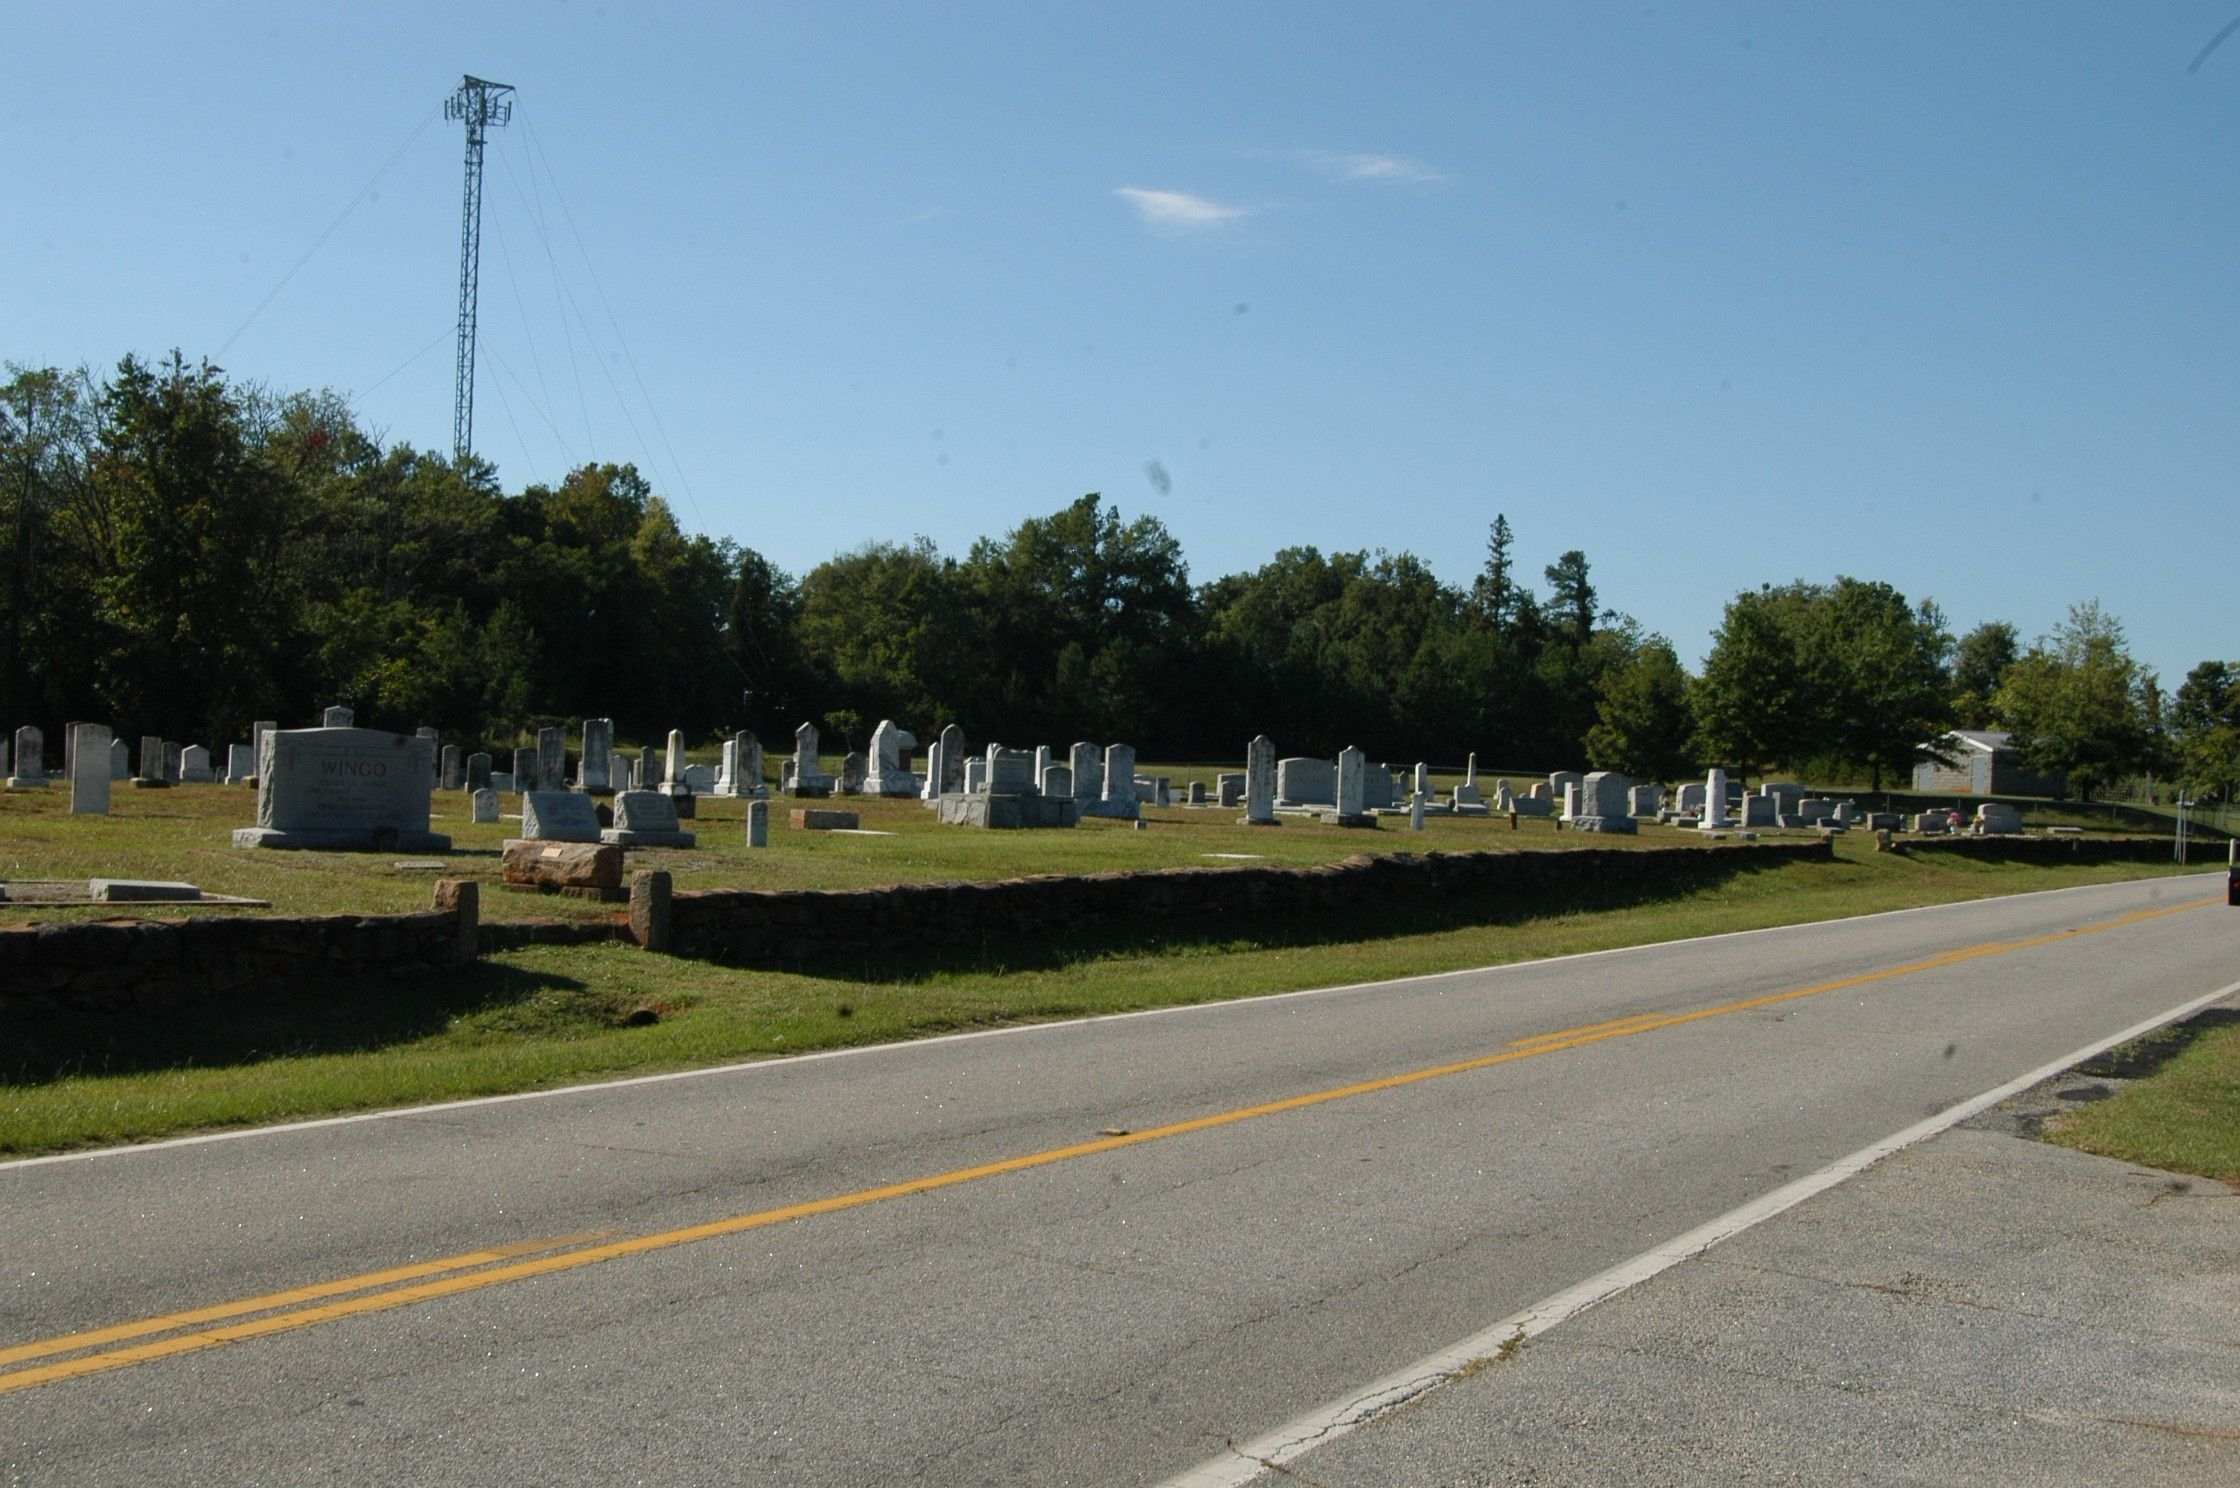 Mount Zion Baptist Church Cemetery